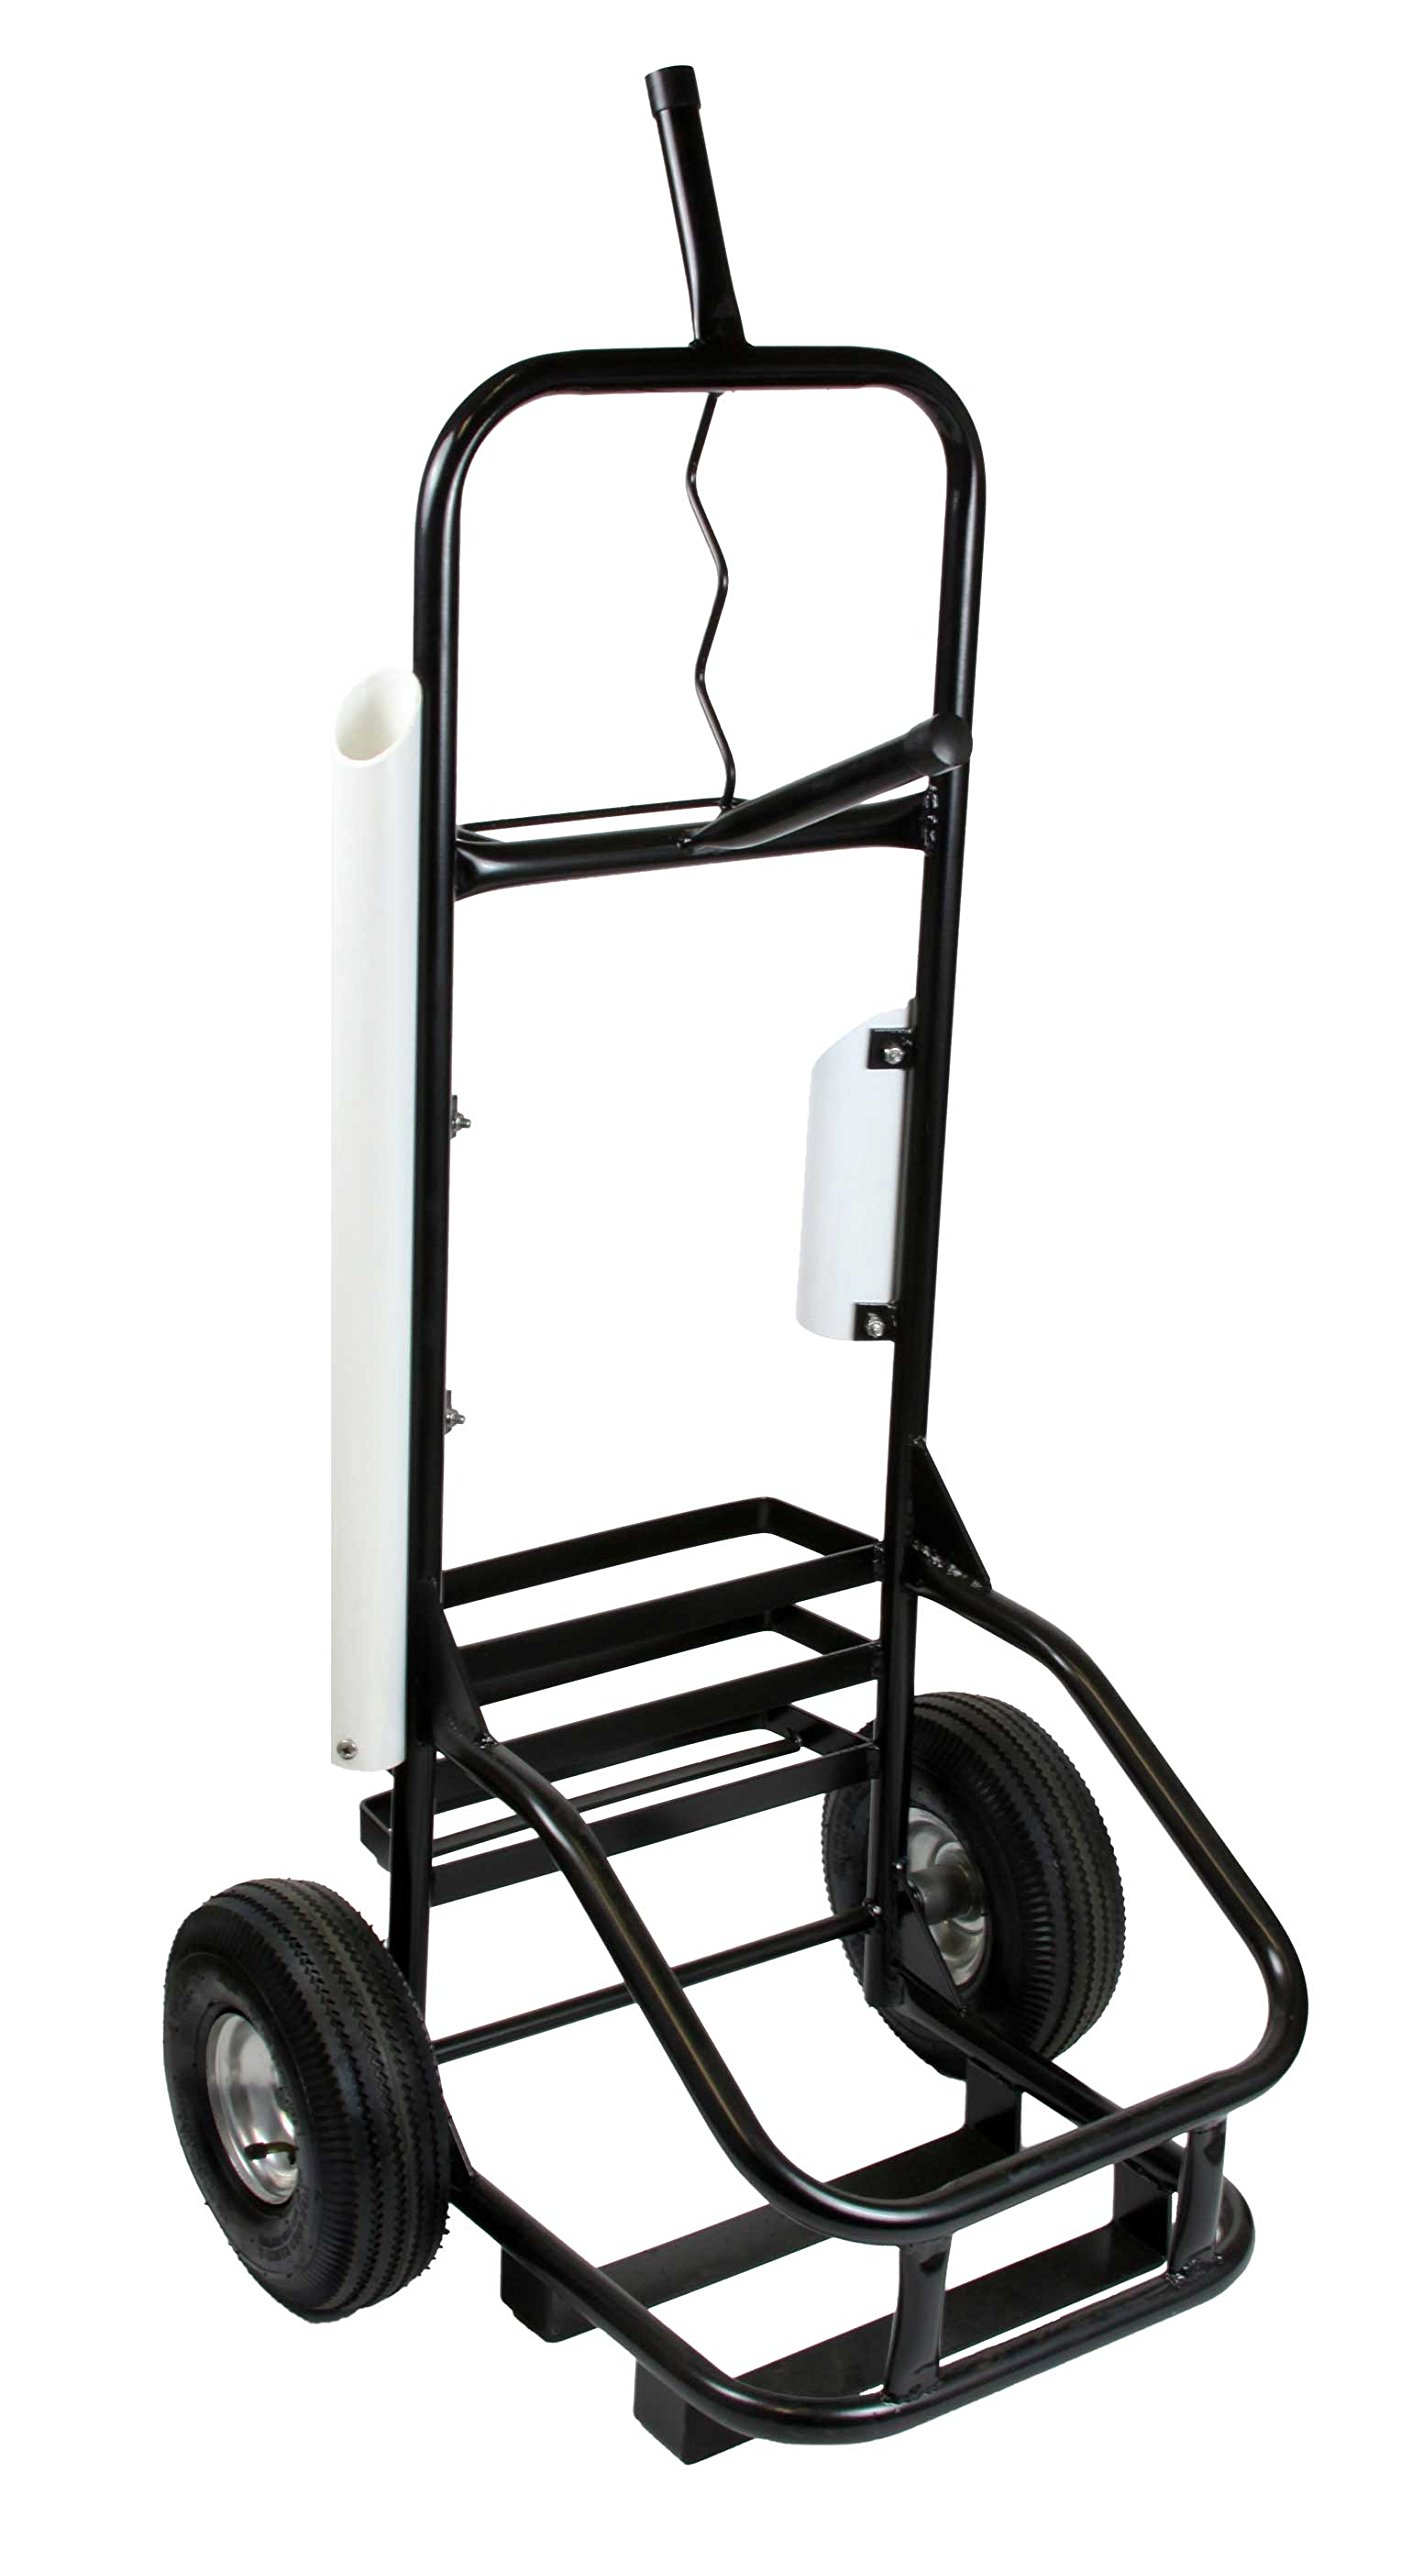 Pool Service Carts for Carrying Pool Supplies Well Constructed for the Working Pool Professional (BLACK POOL SERVICE CART)